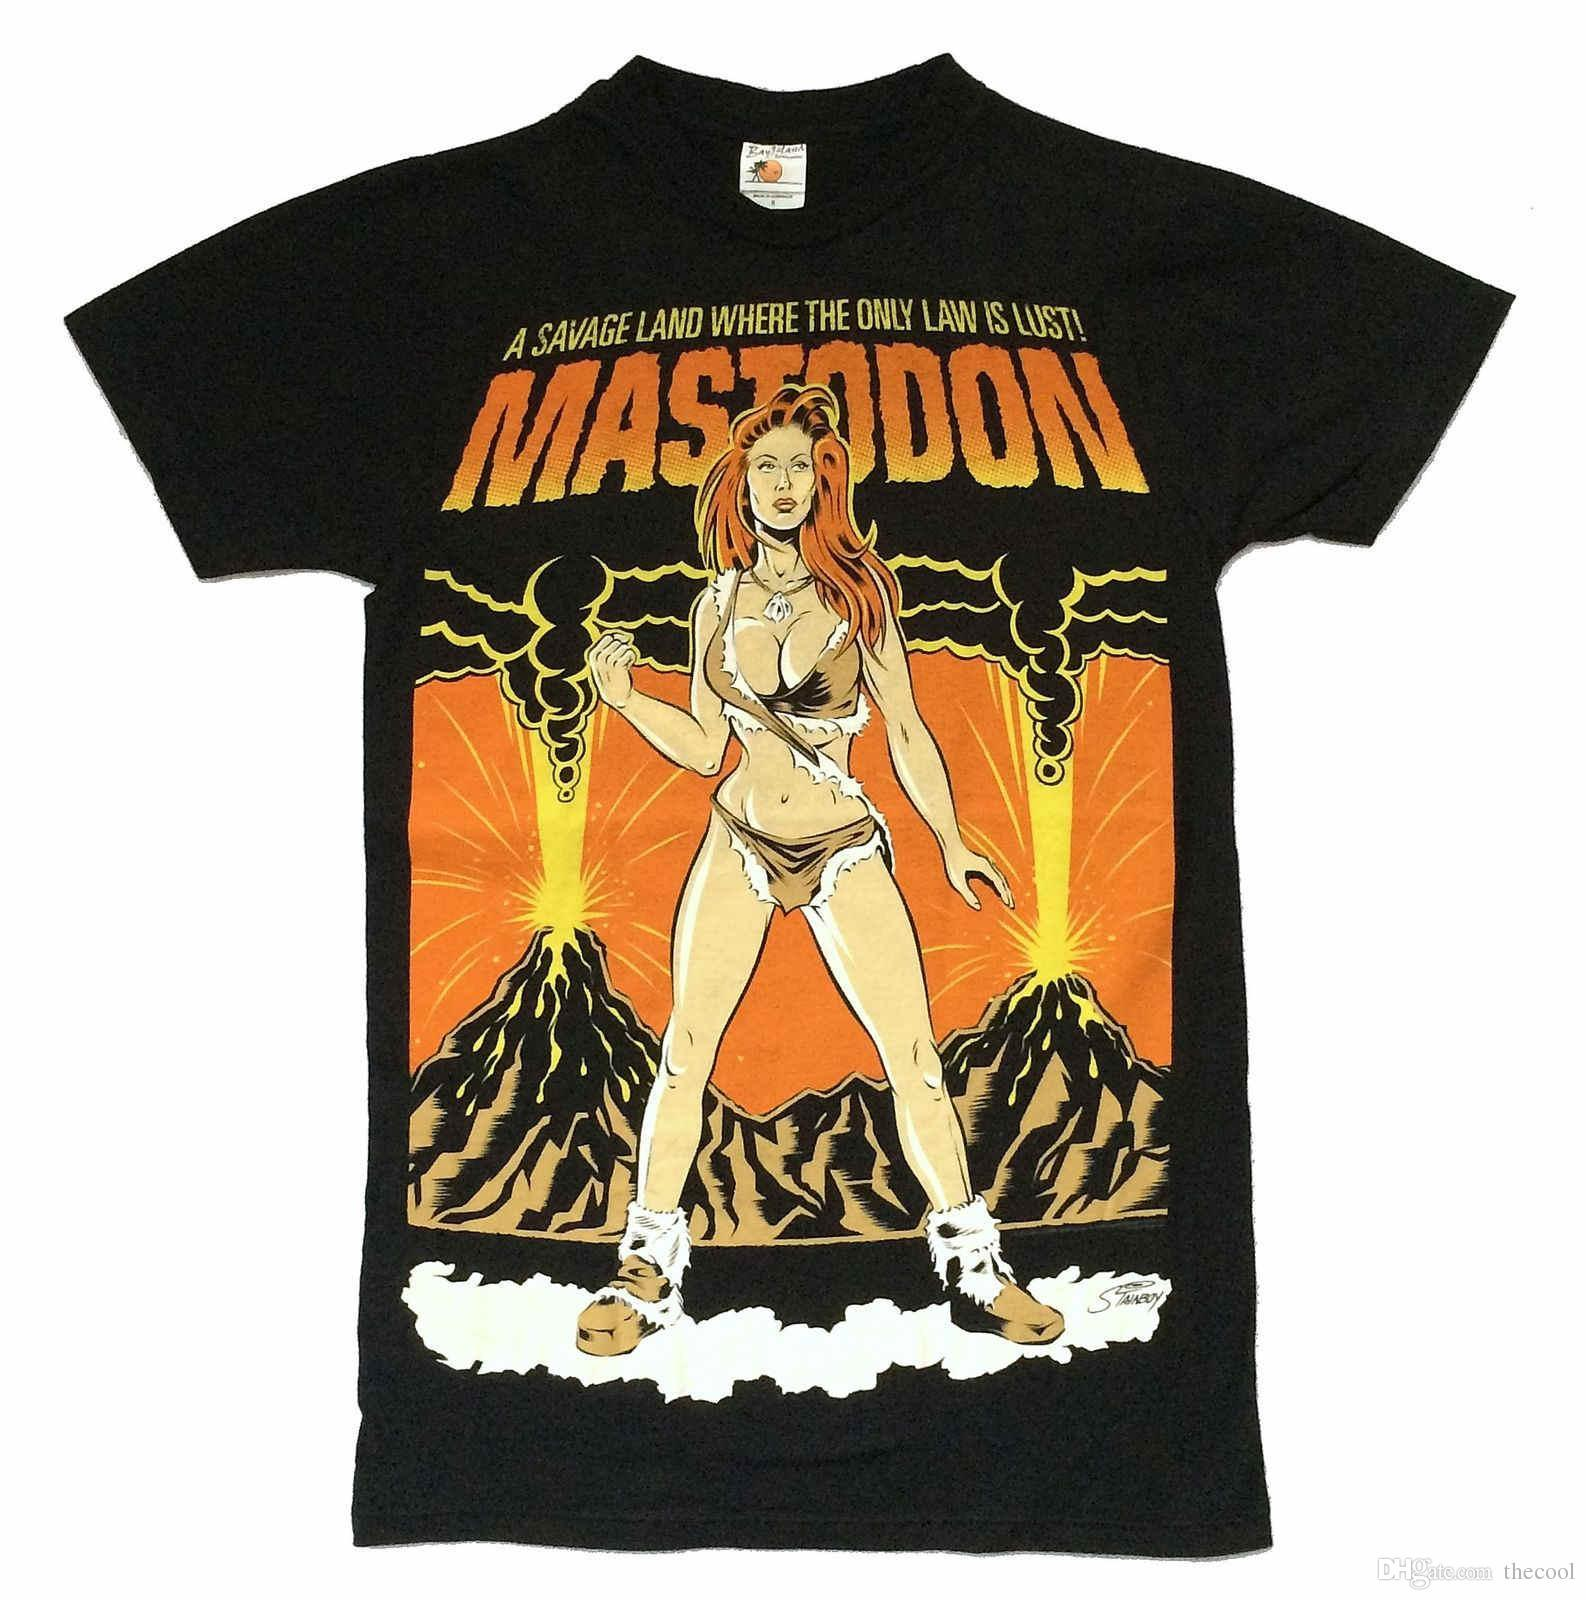 535b792d9d Mastodon Law Is Lust Black T Shirt New Official Band Merch Stainboy Art  Original T Shirts T Shirts With Sayings From Yubin06, $25.33| DHgate.Com